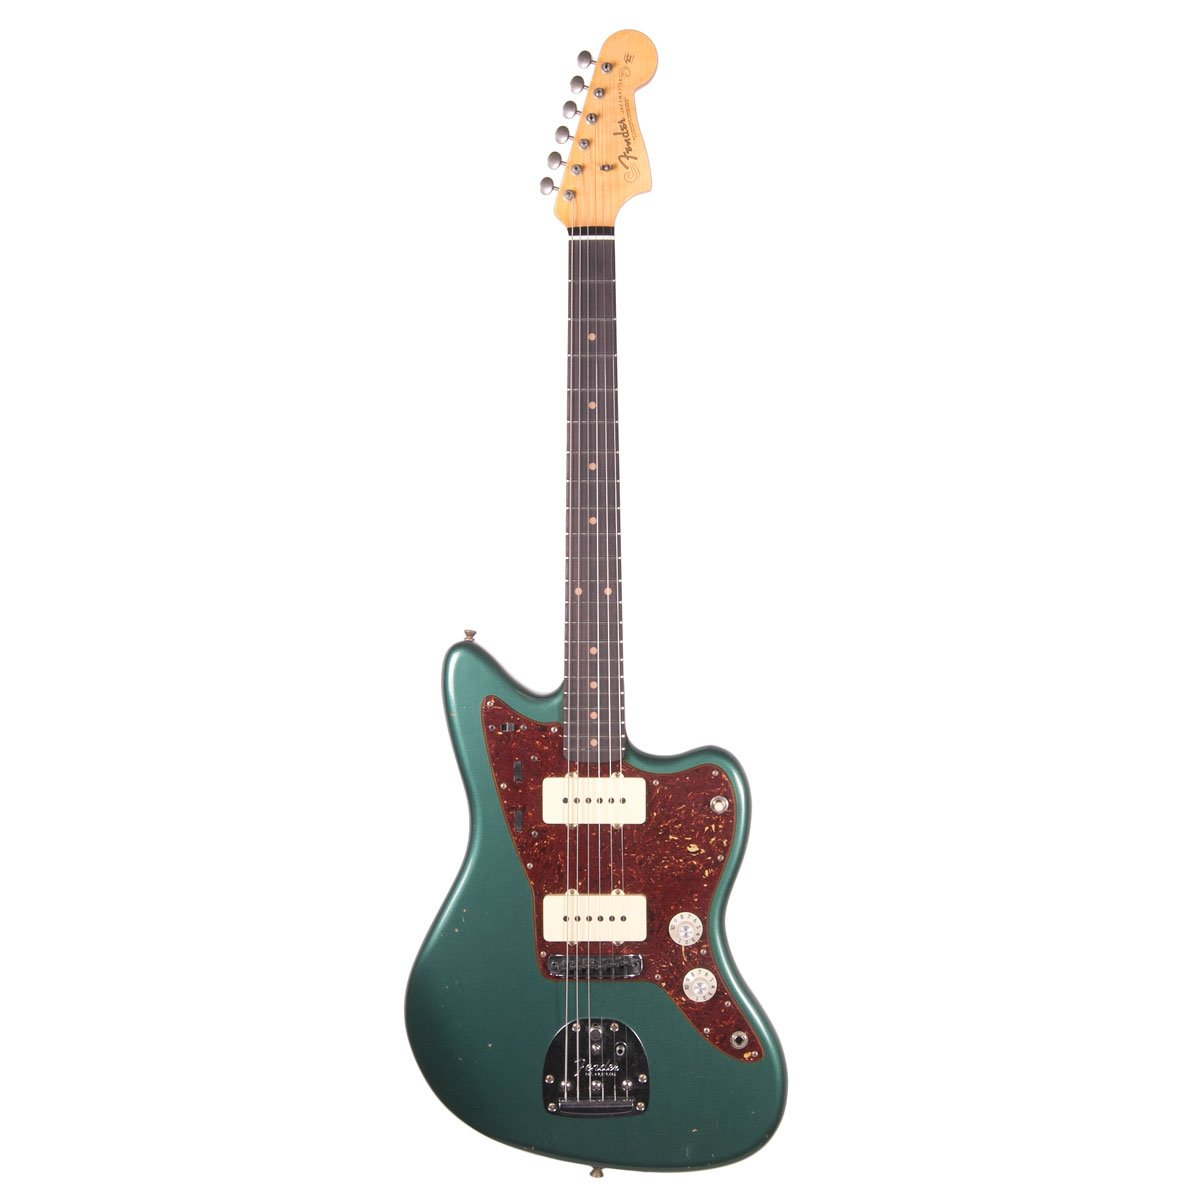 Fender Custom Shop - 1959 Journeyman Relic Jazzmaster - Aged Sherwood Green